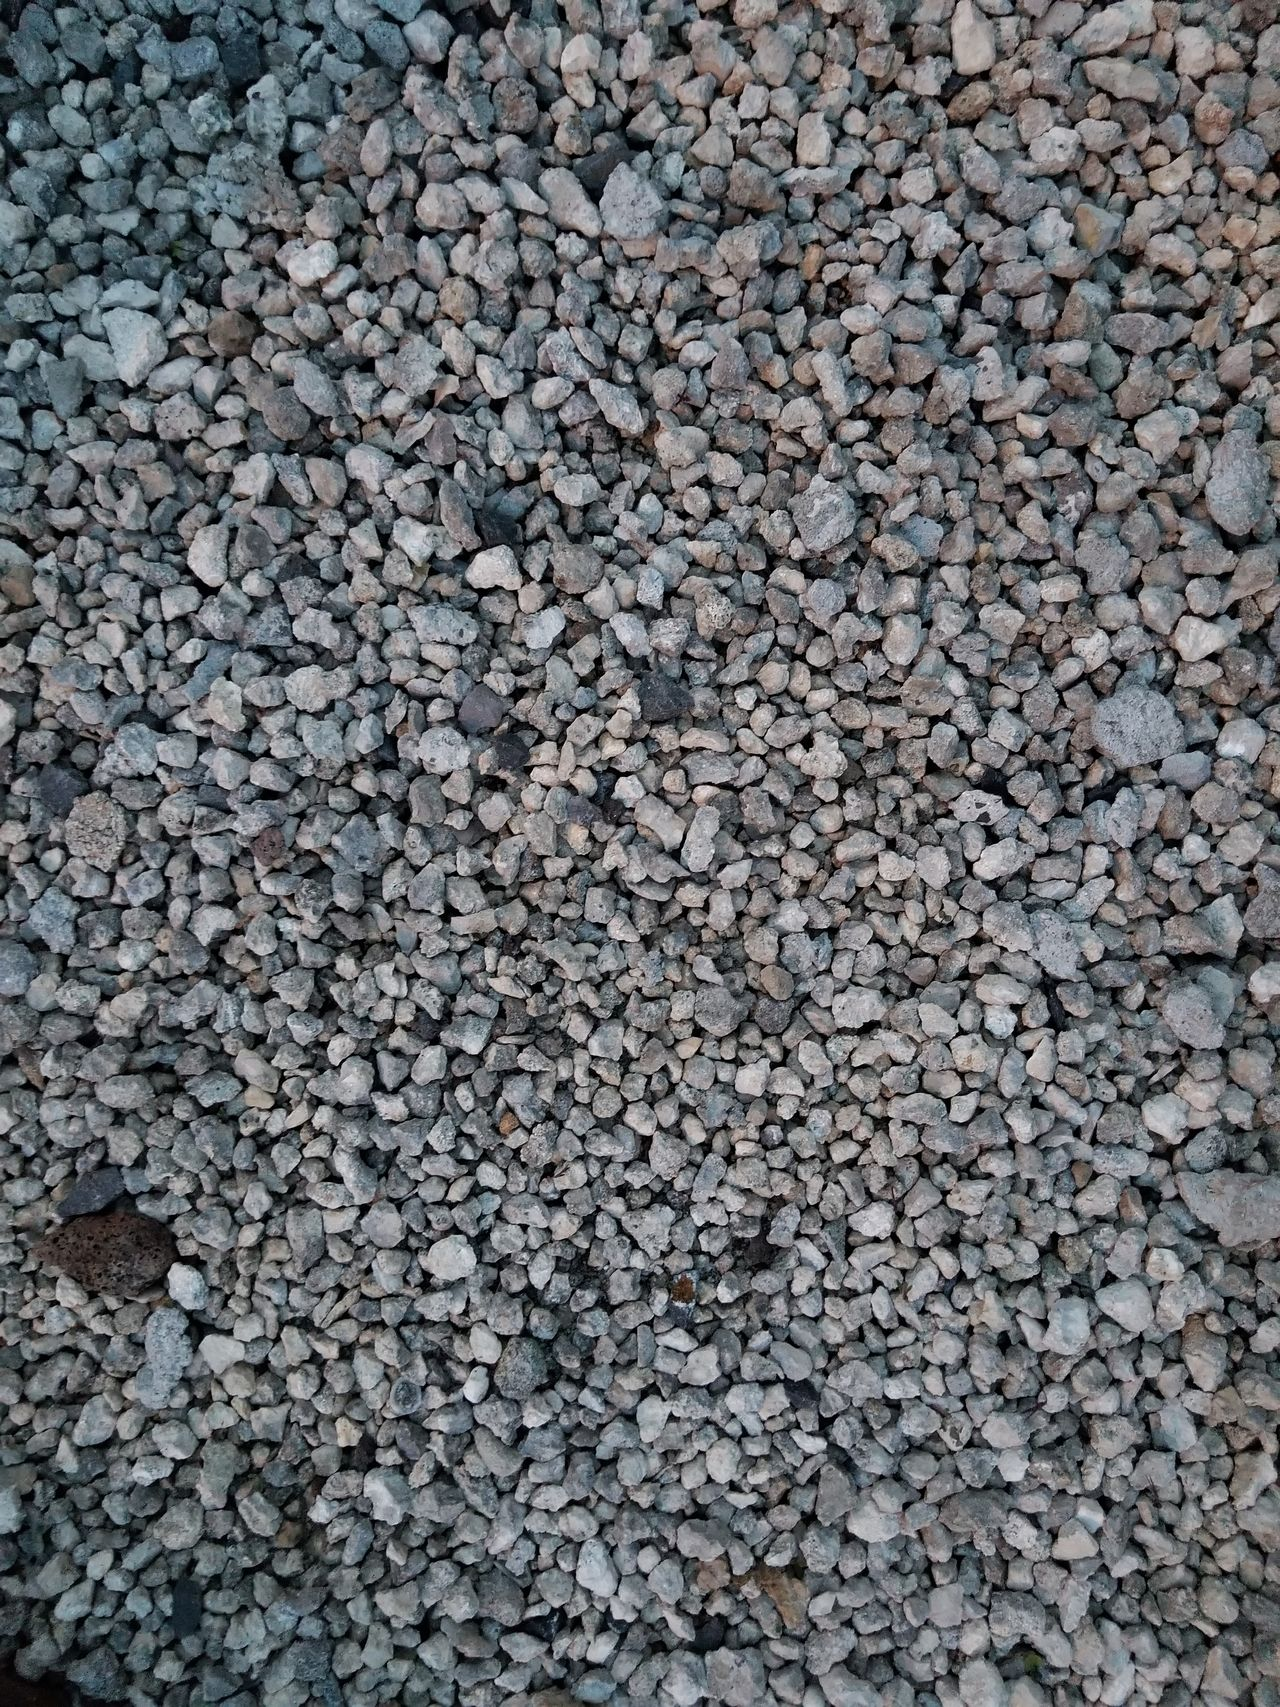 Backgrounds Textured  Full Frame No People Pattern Day Close-up Outdoors Rocks Concrete Abstract Corals Eyeem Backgrounds EyeEnNewHere Pebbles